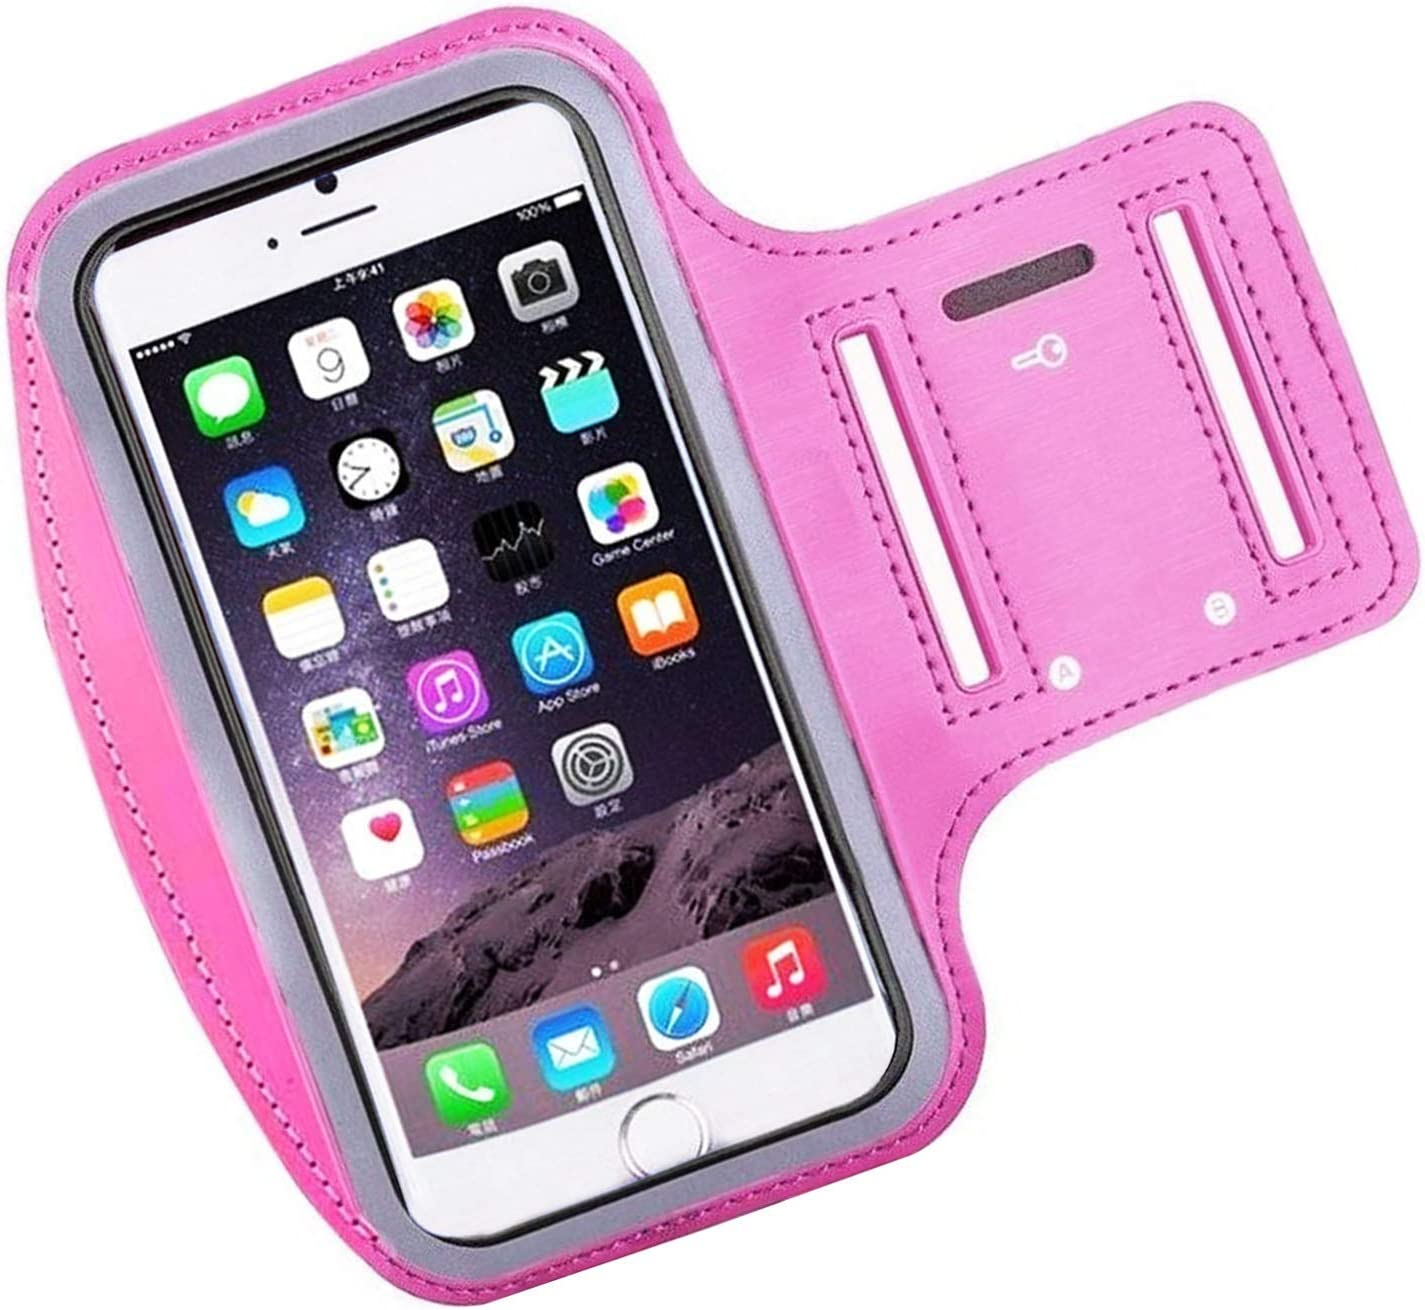 Cell Phone Armband Case for iPhone Max 86% OFF Ranking TOP19 8 7 6s Galaxy S 6 S9 Samsung